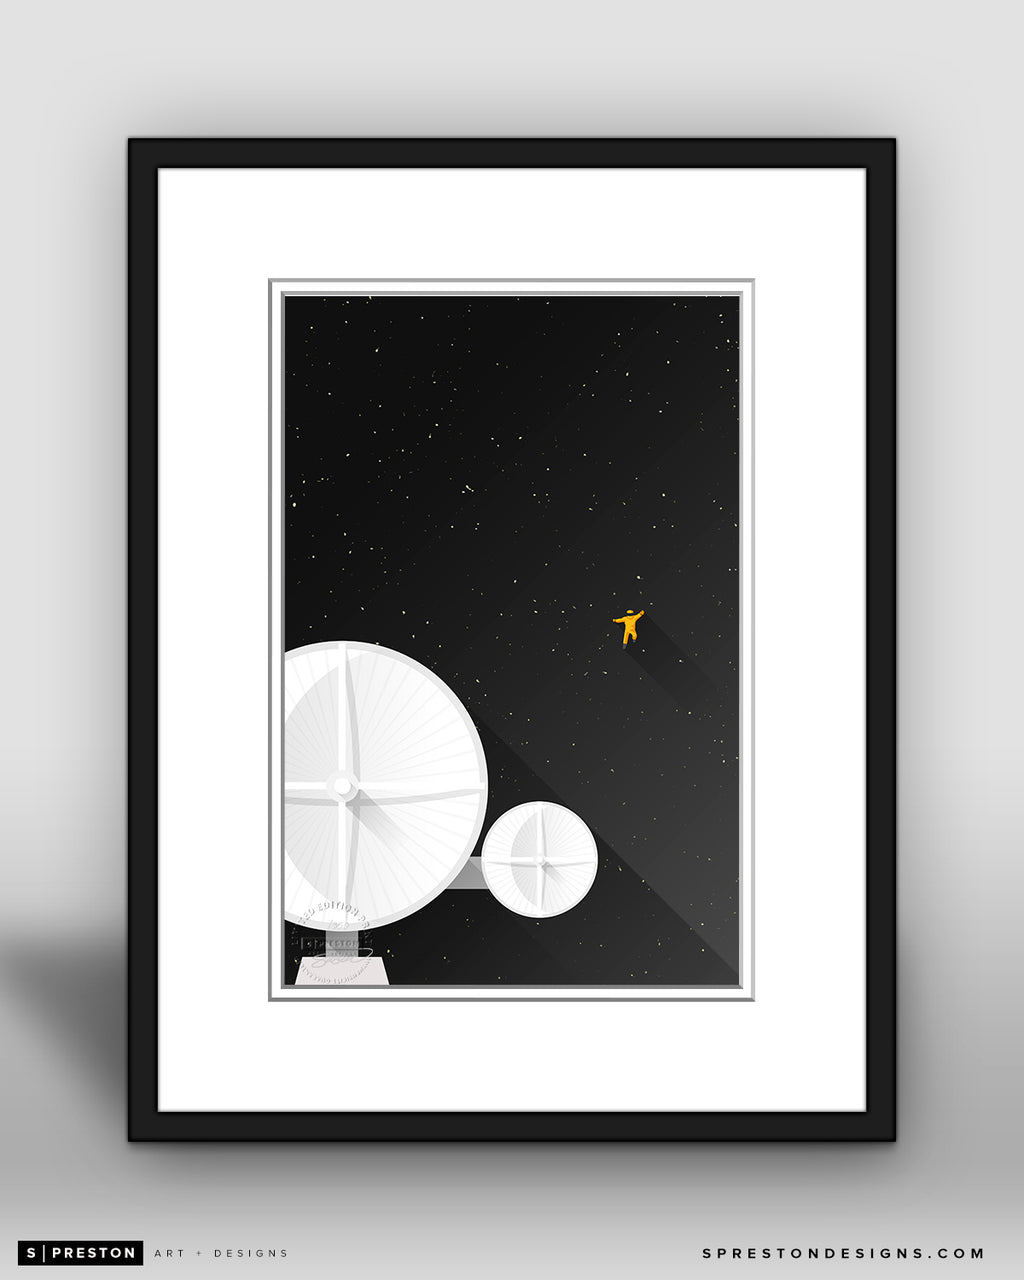 Minimalist Movies - Discovery One - 2001 A Space Odyssey - S. Preston